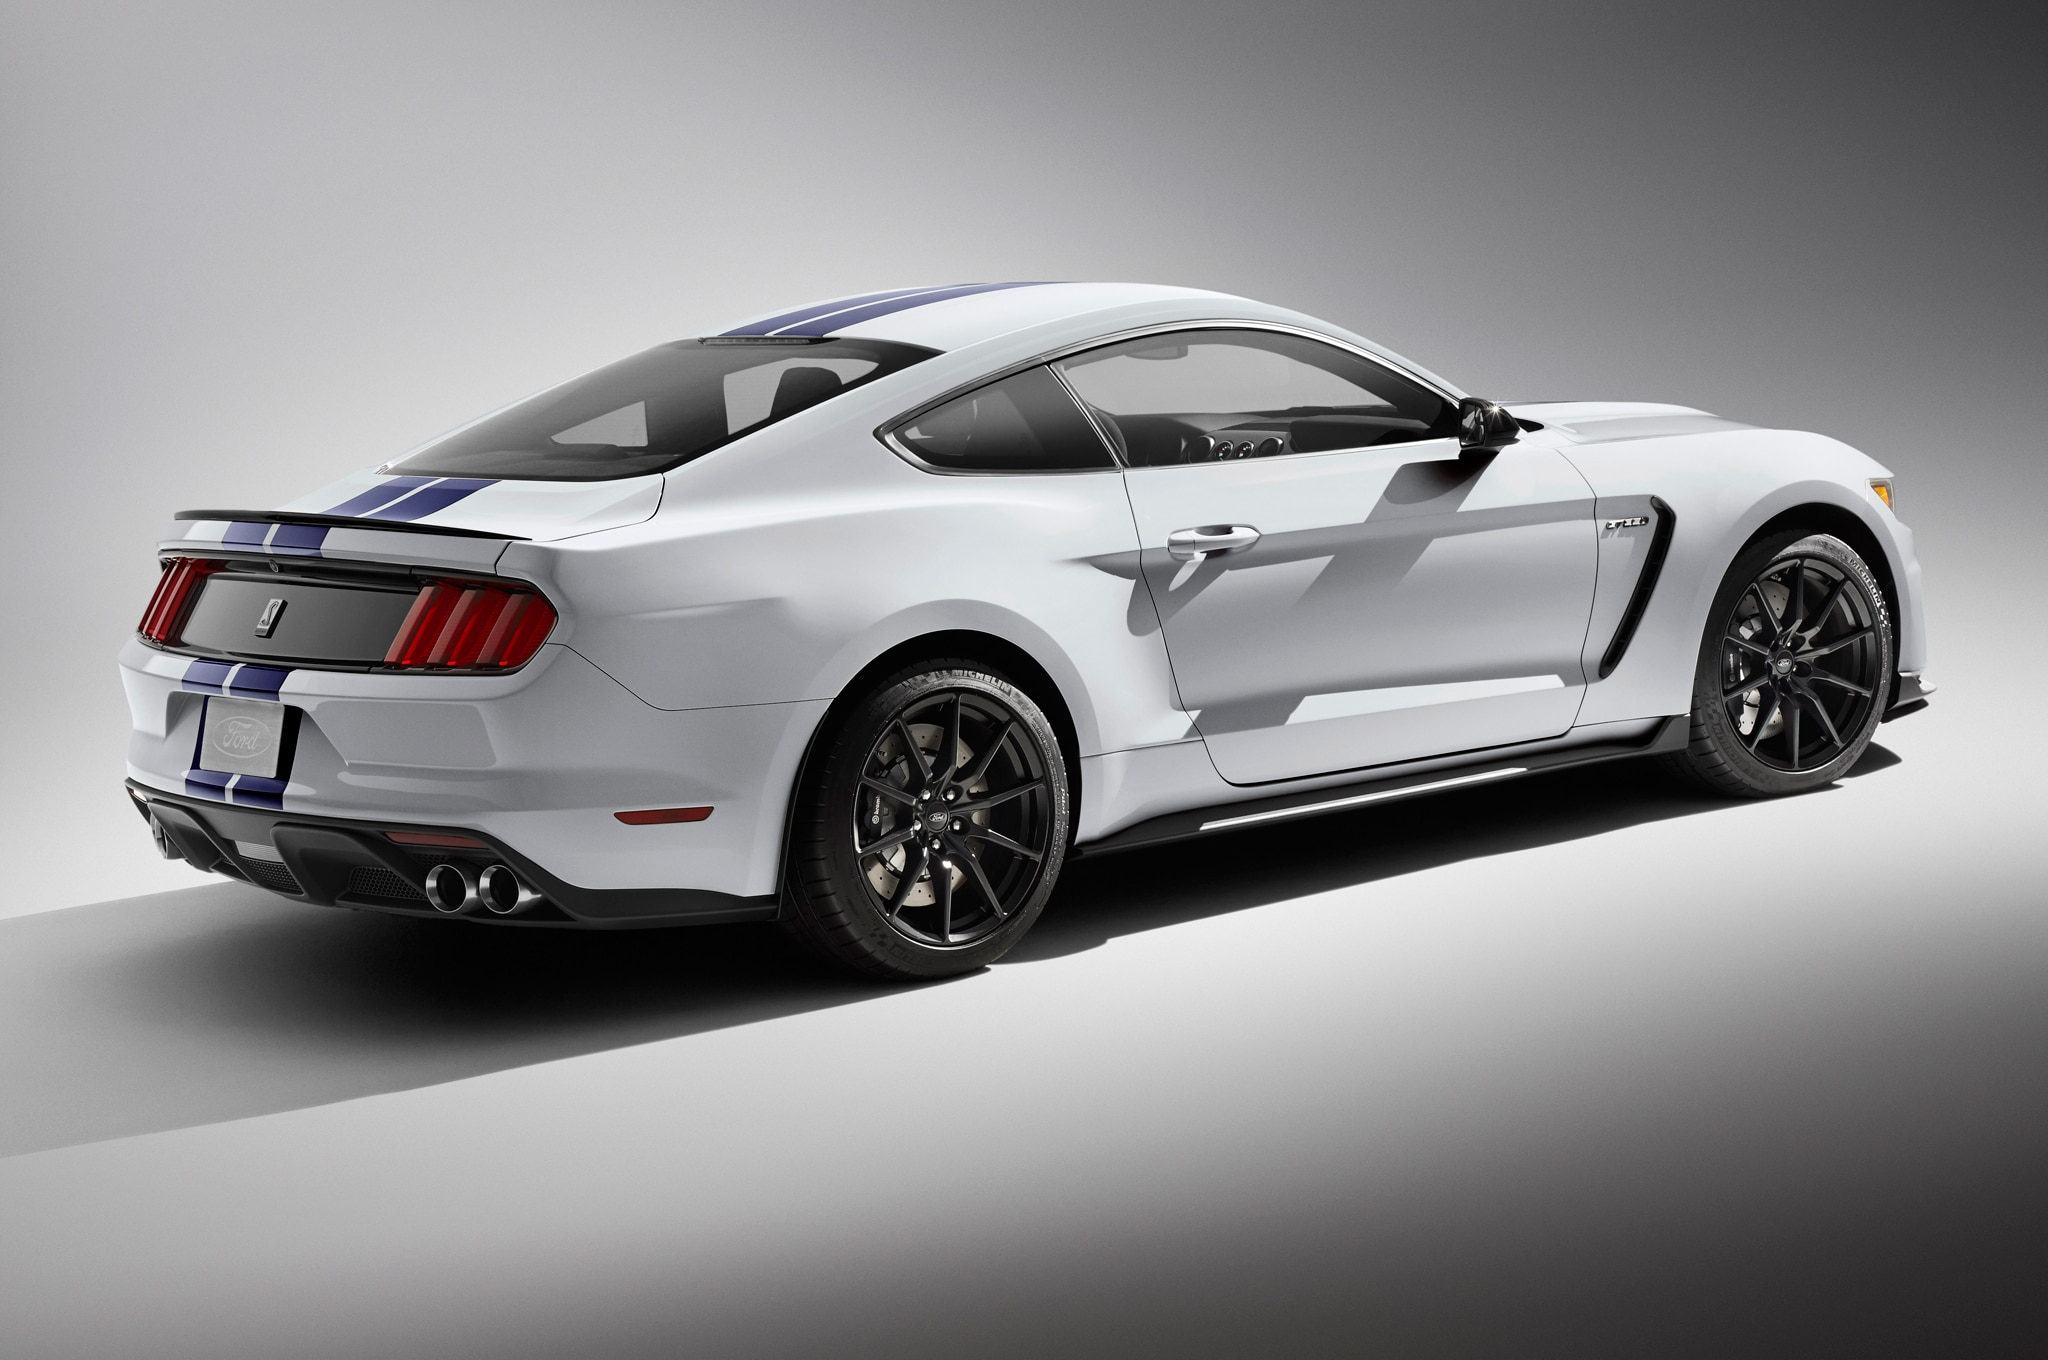 2016 ford shelby gt350 mustang chassis detailed. Black Bedroom Furniture Sets. Home Design Ideas